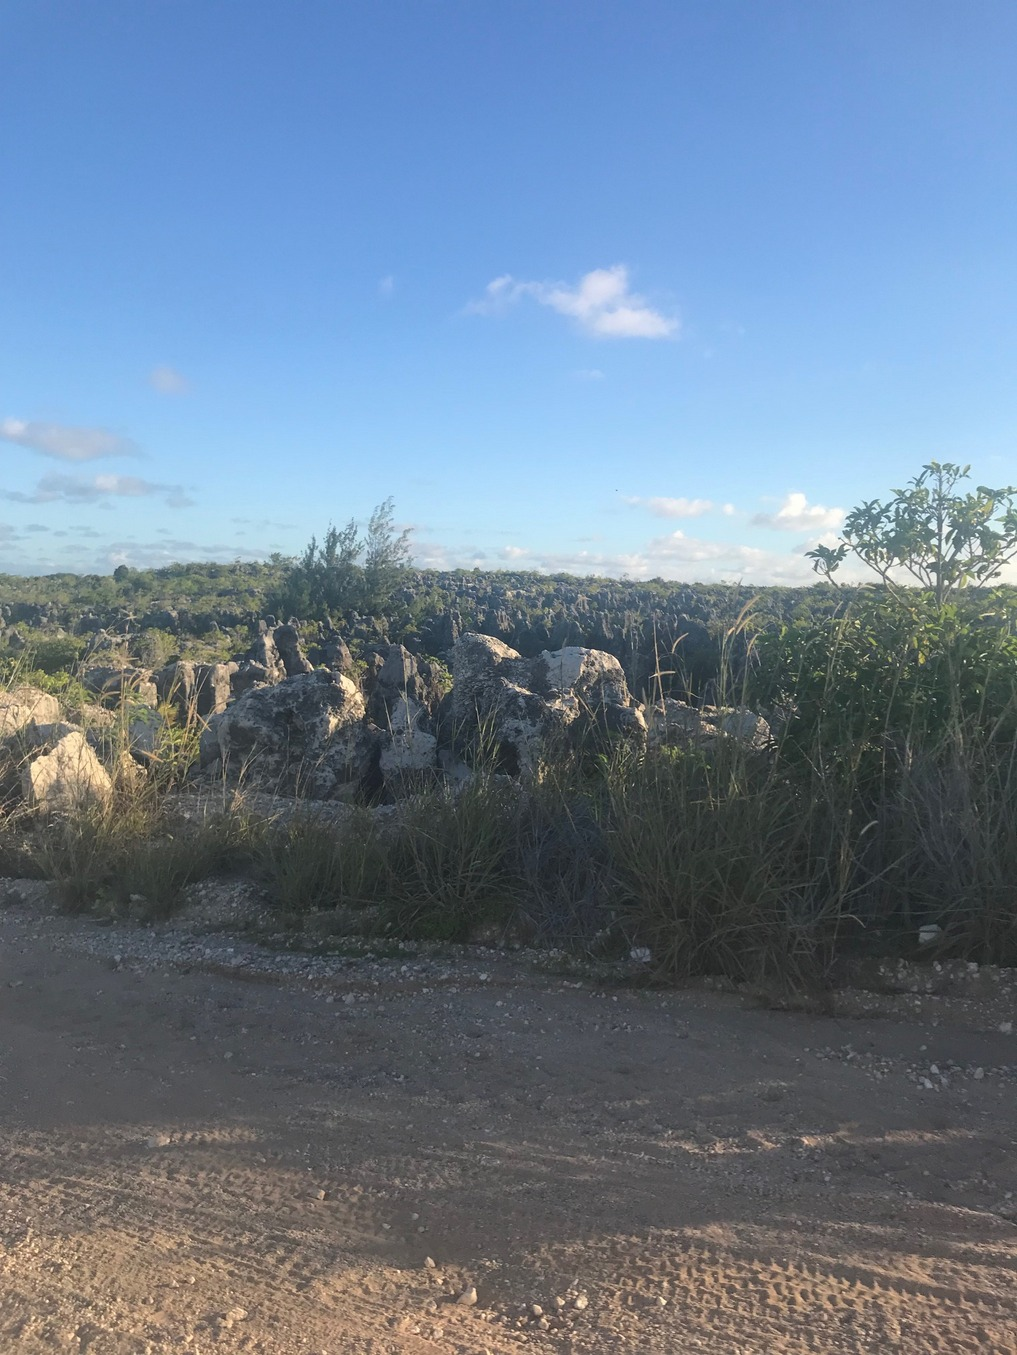 The interior of the island is recovering from aggressive mining operations - Nauru 2018